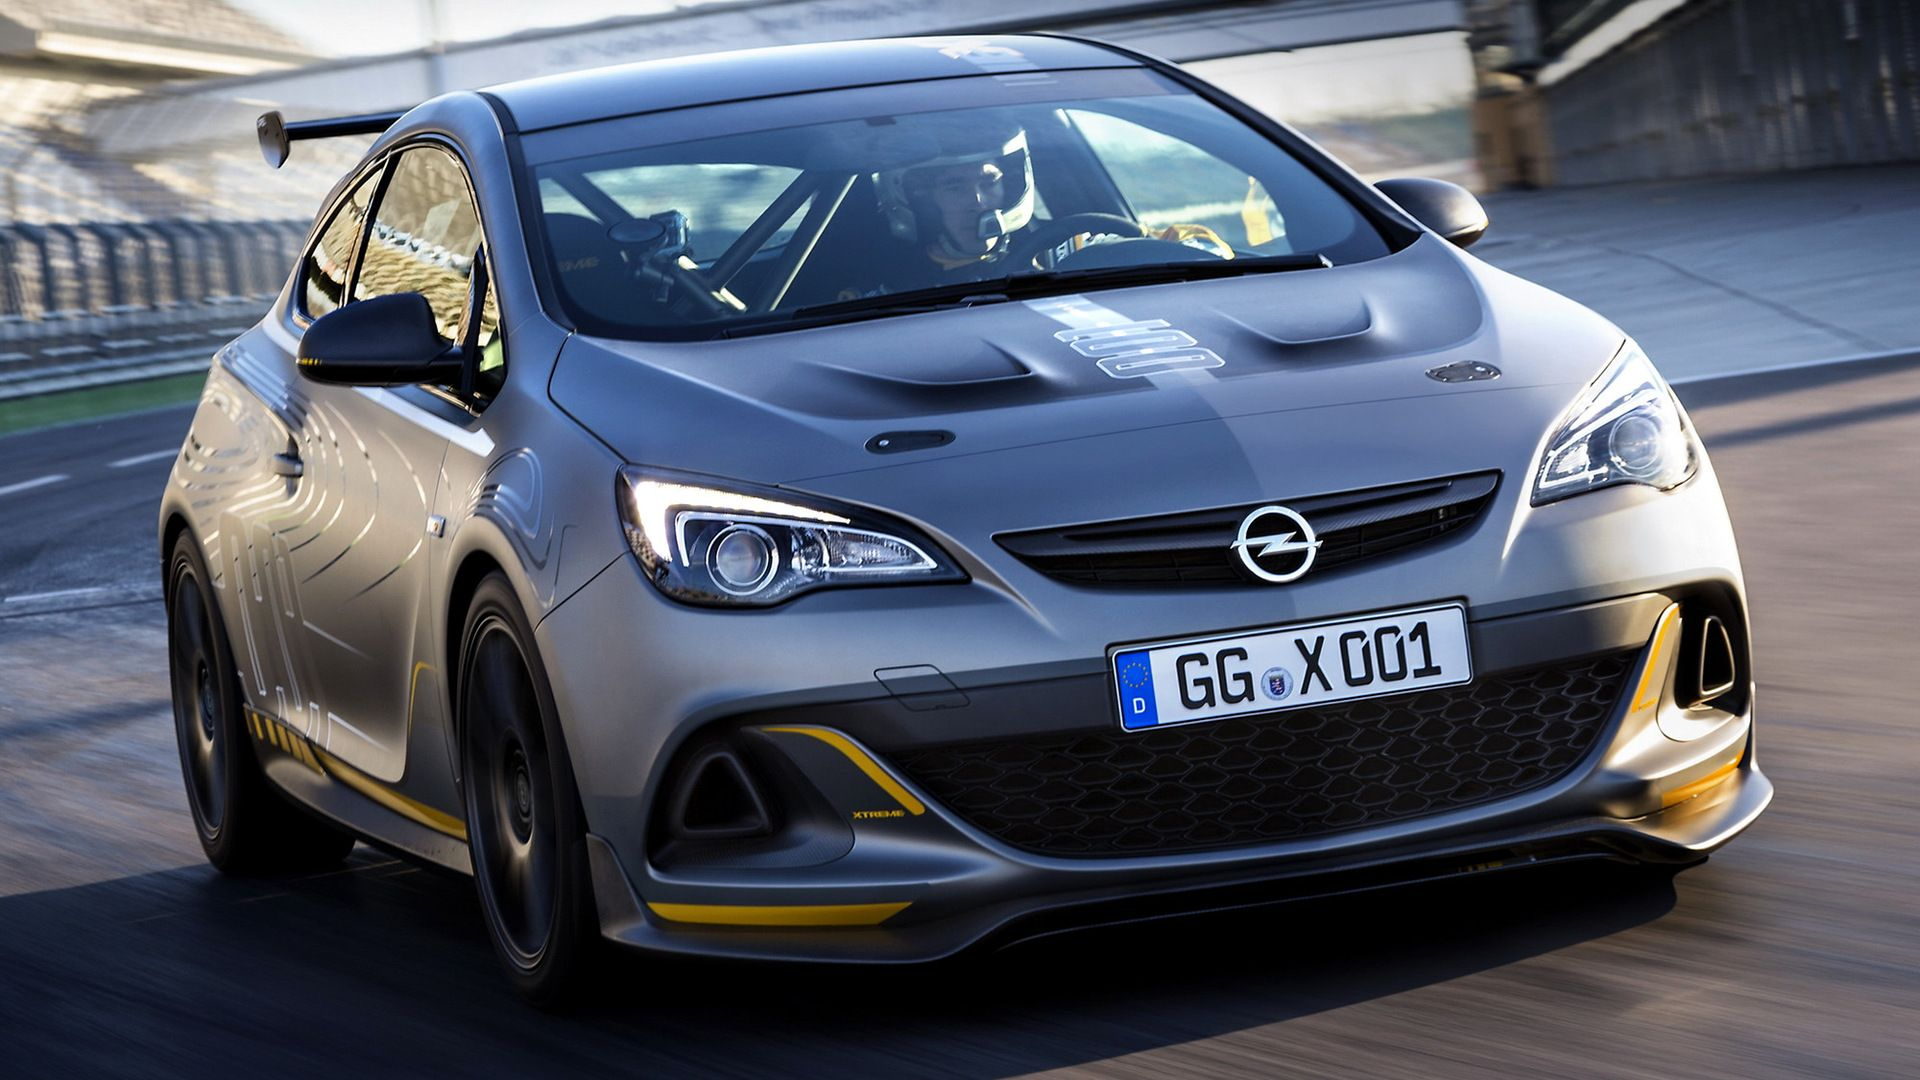 Opel Astra OPC Extreme Concept (2014) Wallpapers and HD Images ...